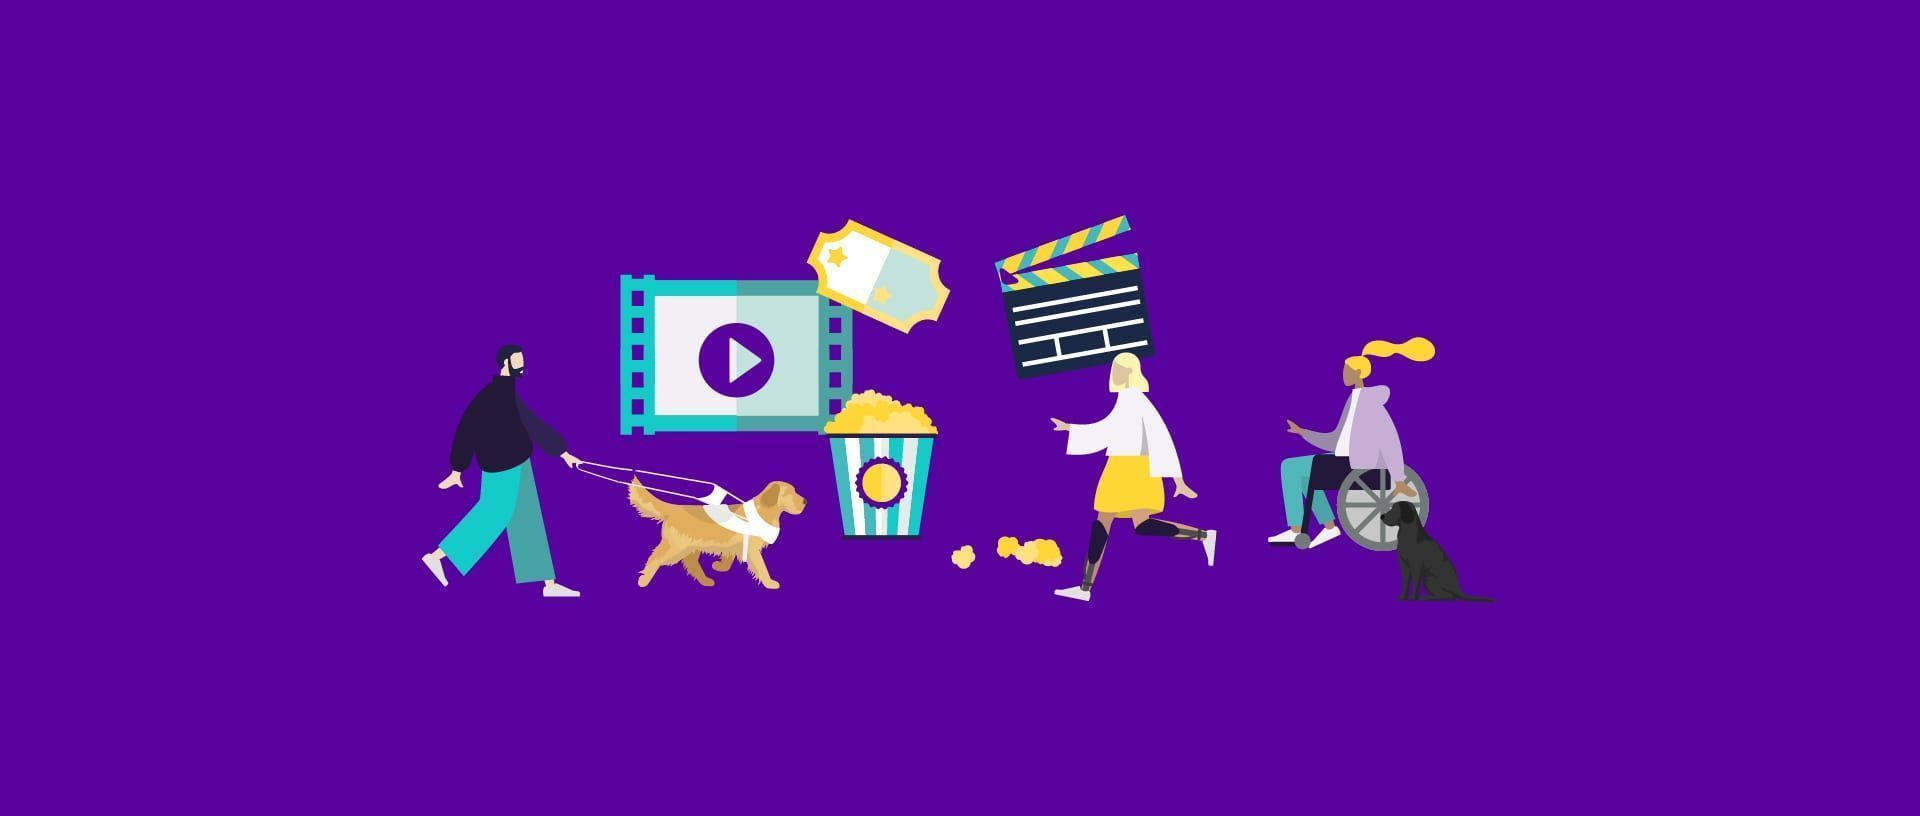 An illustration depicting a man led by a guide dog a piece of film with a play icon a cinema ticket a popcorn box a clapperboard a woman with prosthetics walking and a woman in a wheelchair with an assistance dog